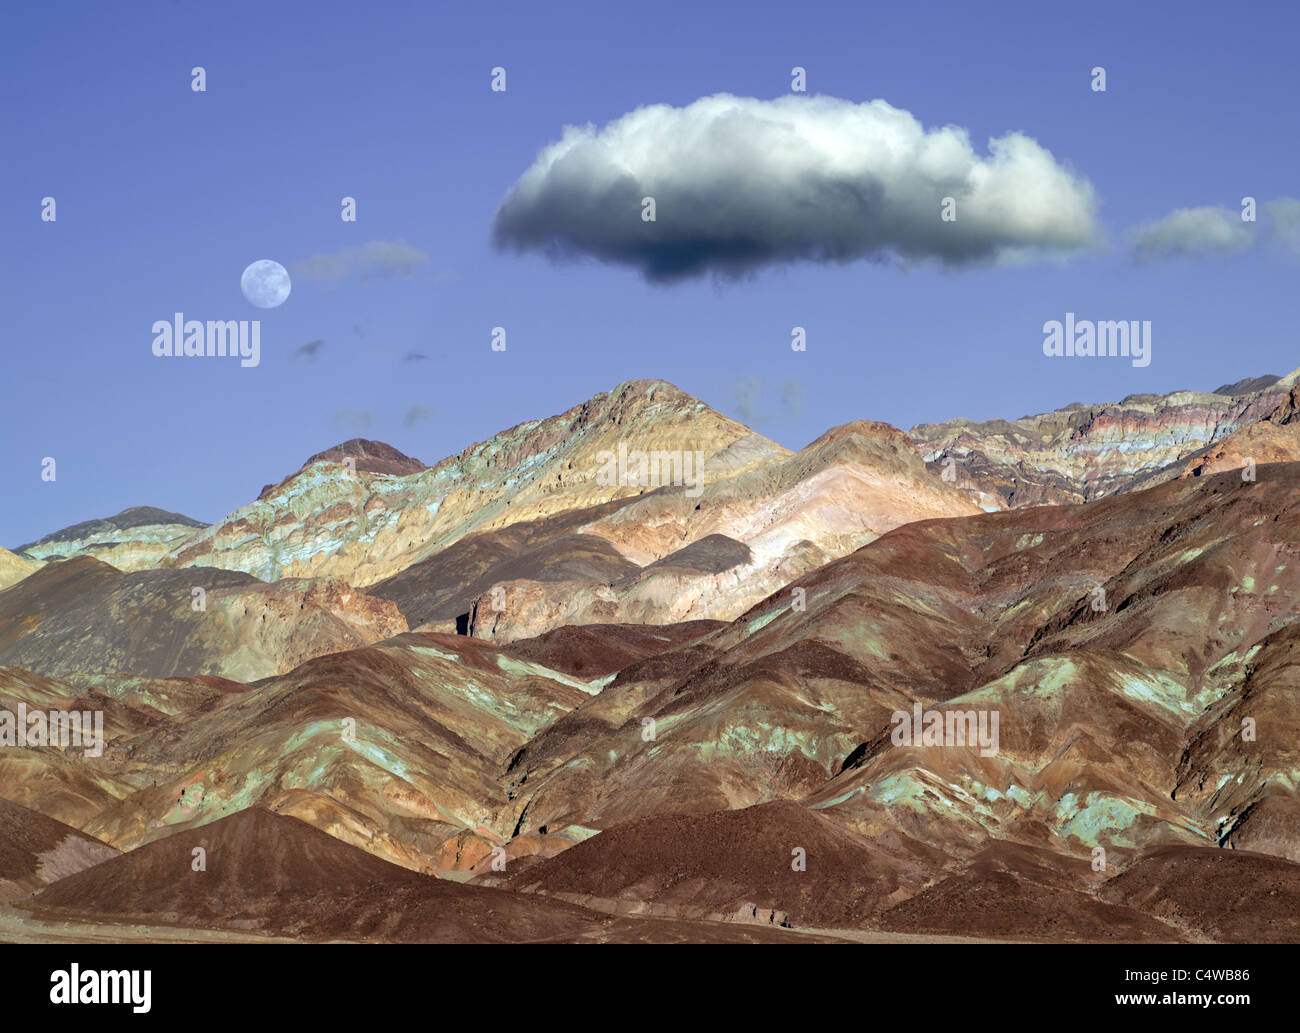 Colorful hills and moon. Death Valley National Park, California - Stock Image